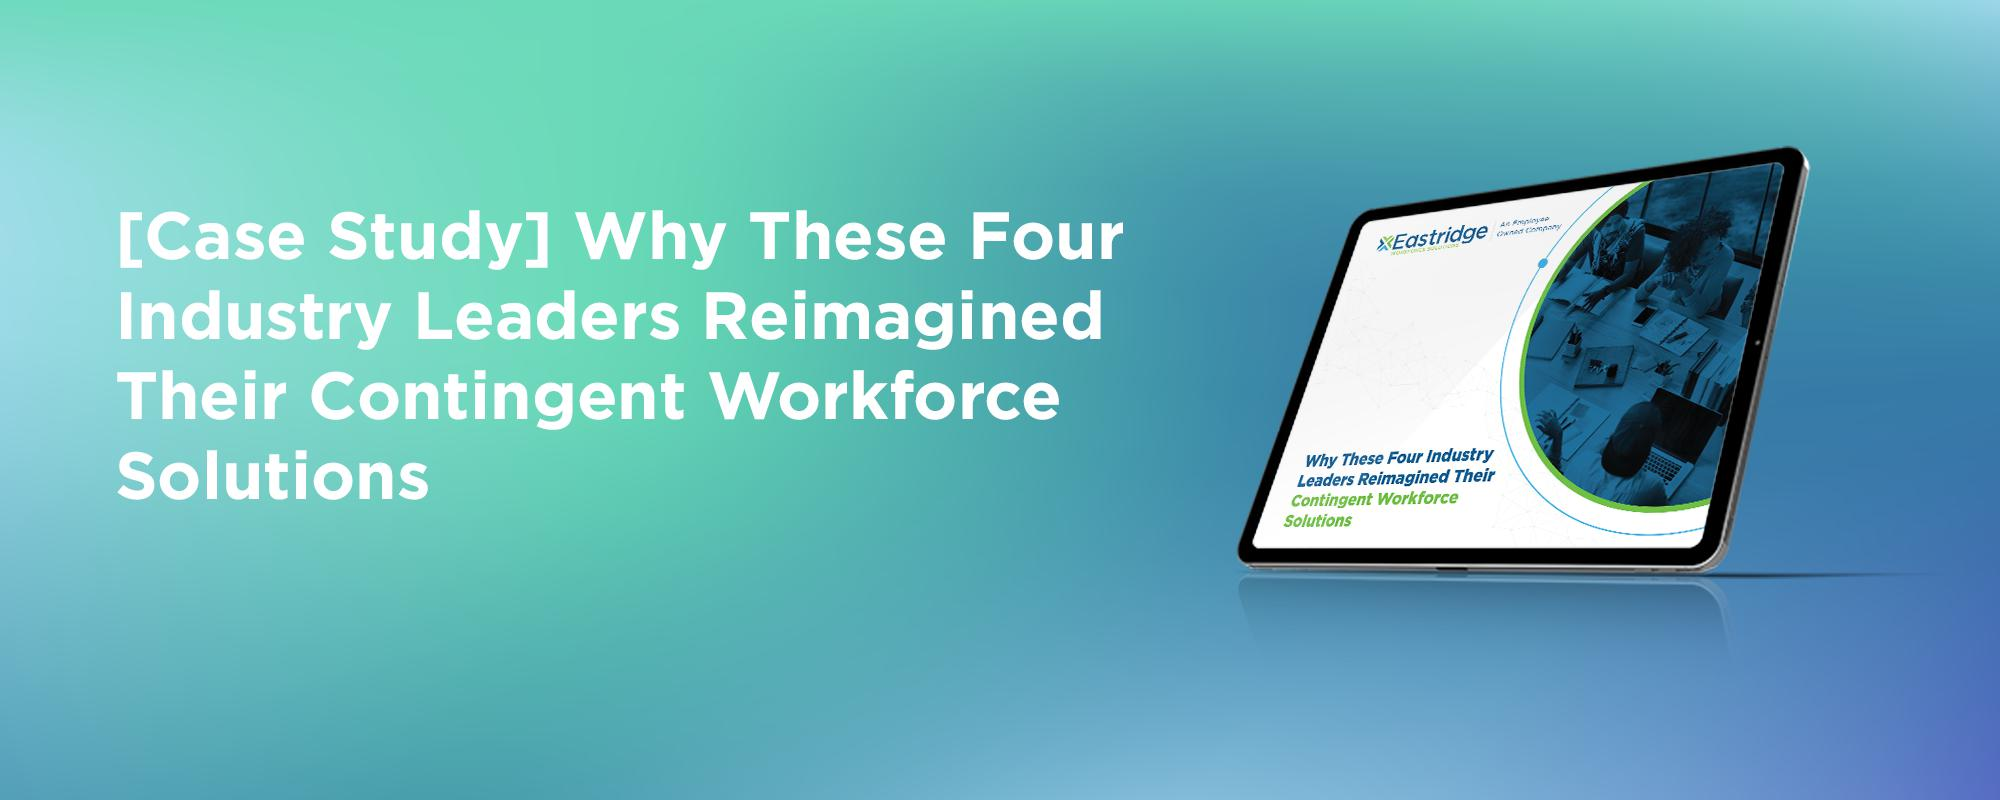 [Case Study] Why These Four Industry Leaders Reimagined Their Contingent Workforce Solutions